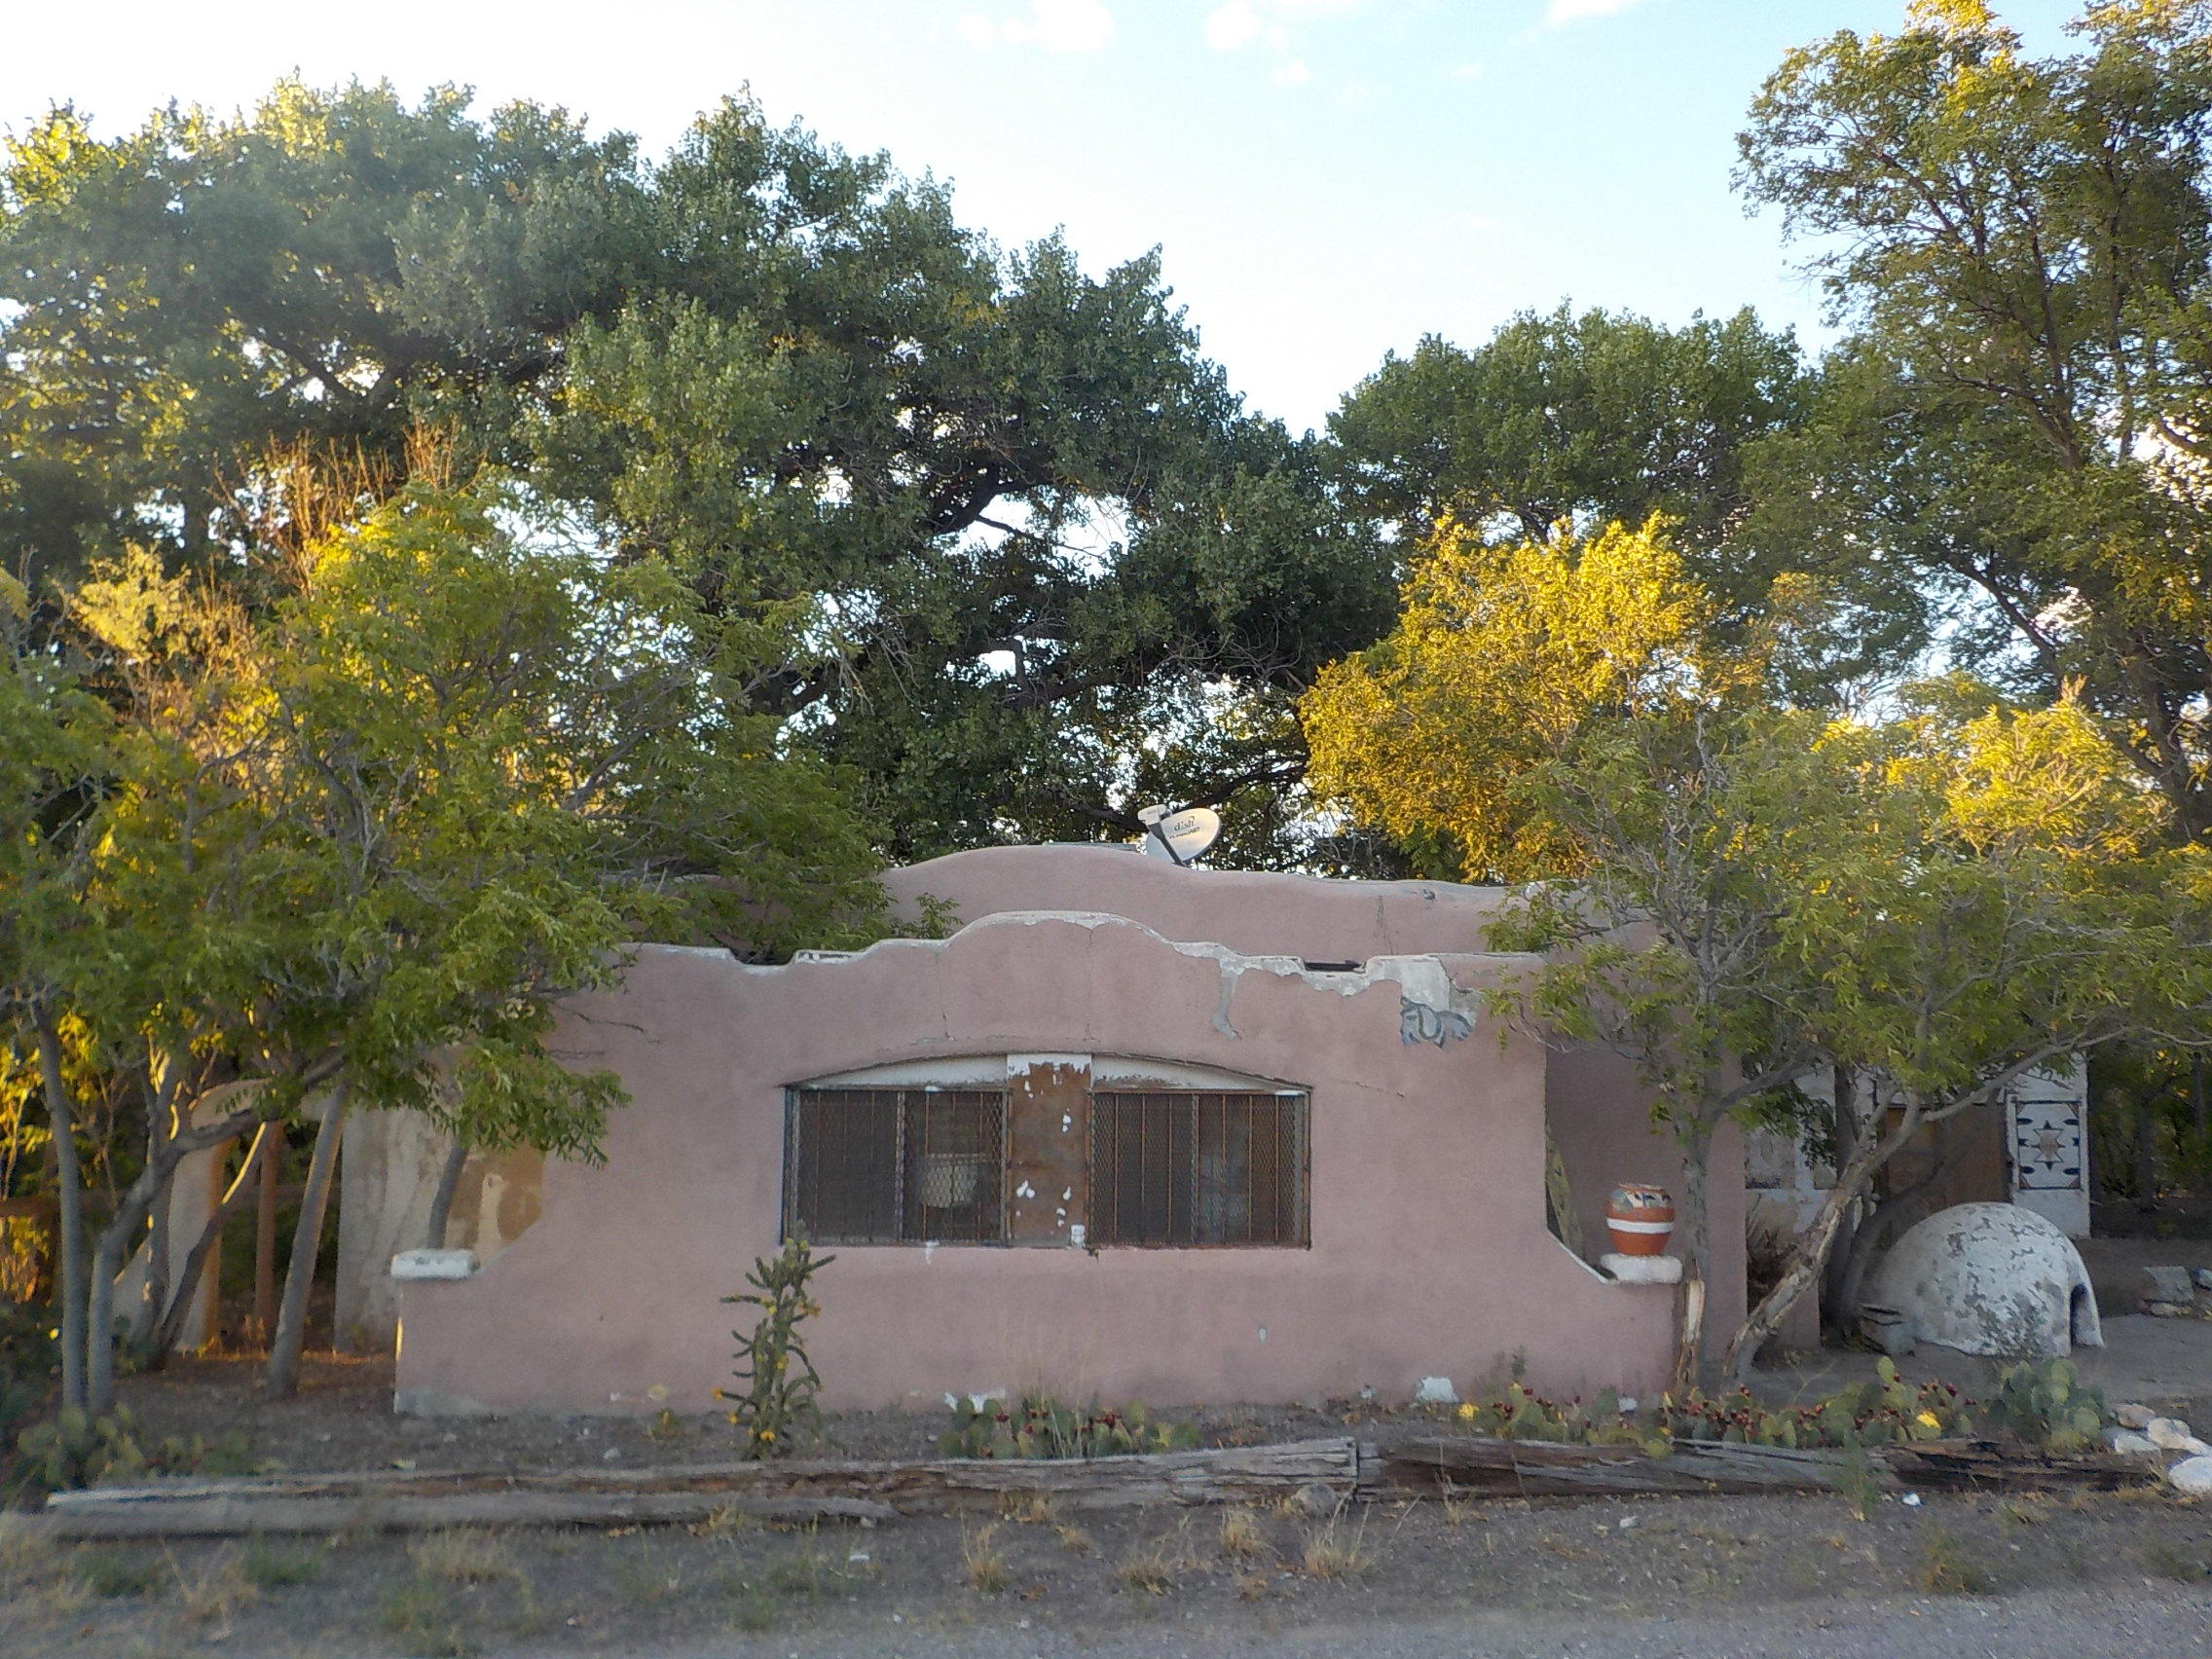 This charming adobe home was a trading post back in the 1800s!  Lovely mature trees grace the embankments of the active acequia.  The interior of the home has southwestern appeal.  A sturdy basement can be used for extra storage.  The casita next door is included, and is allowed by the special Algodones zoning, along with light retail and commercial.  Seller credit for utility allowance at closing.  Title commitment and staked survey have been completed.  The block building is awaiting your creative design.  The lot extends past the footbridge over the seasonal water.  Algodones is a wonderful small town with easy commuting to Santa Fe, Rio Rancho & Albuquerque.  Come see this unique property!